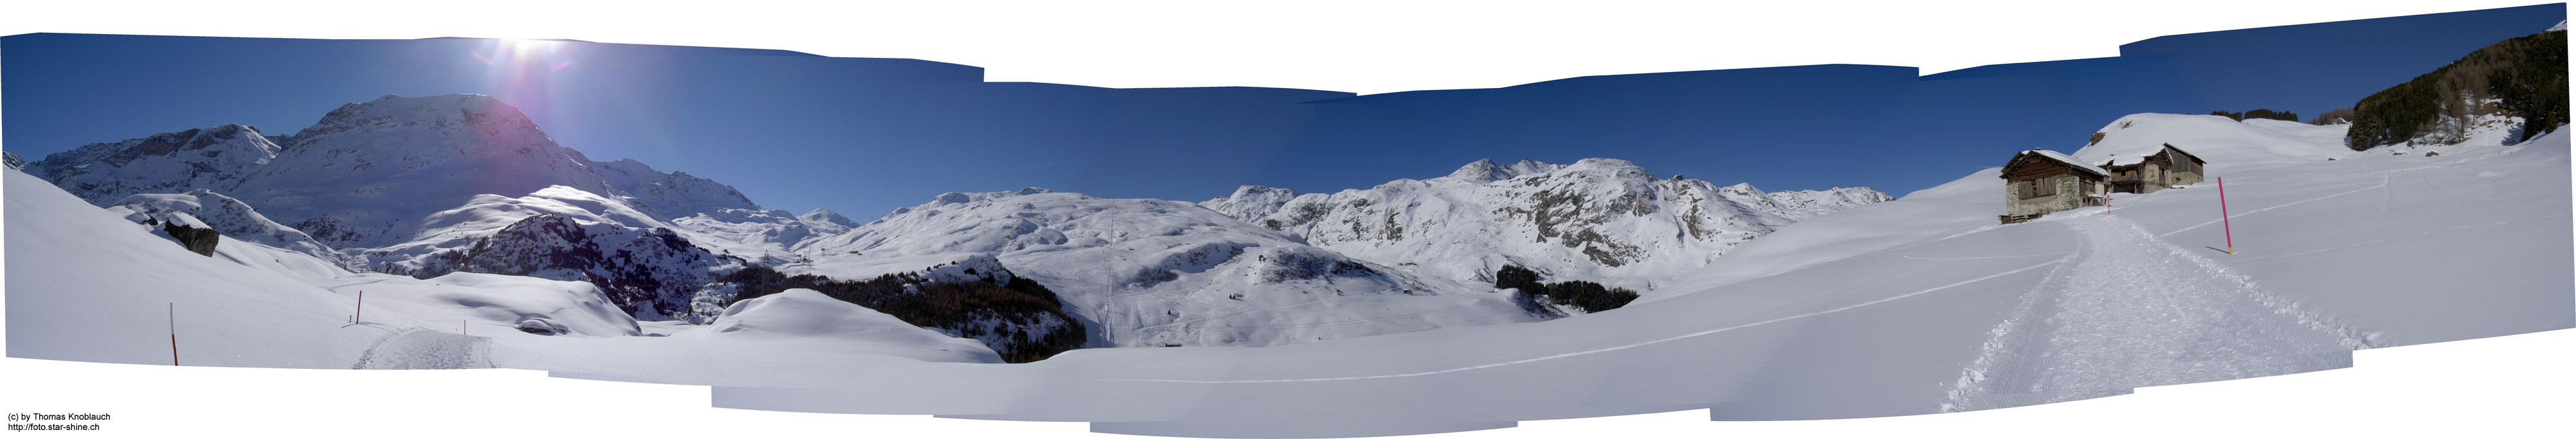 Panorama of Bivio seen from Parschains, Switzerland